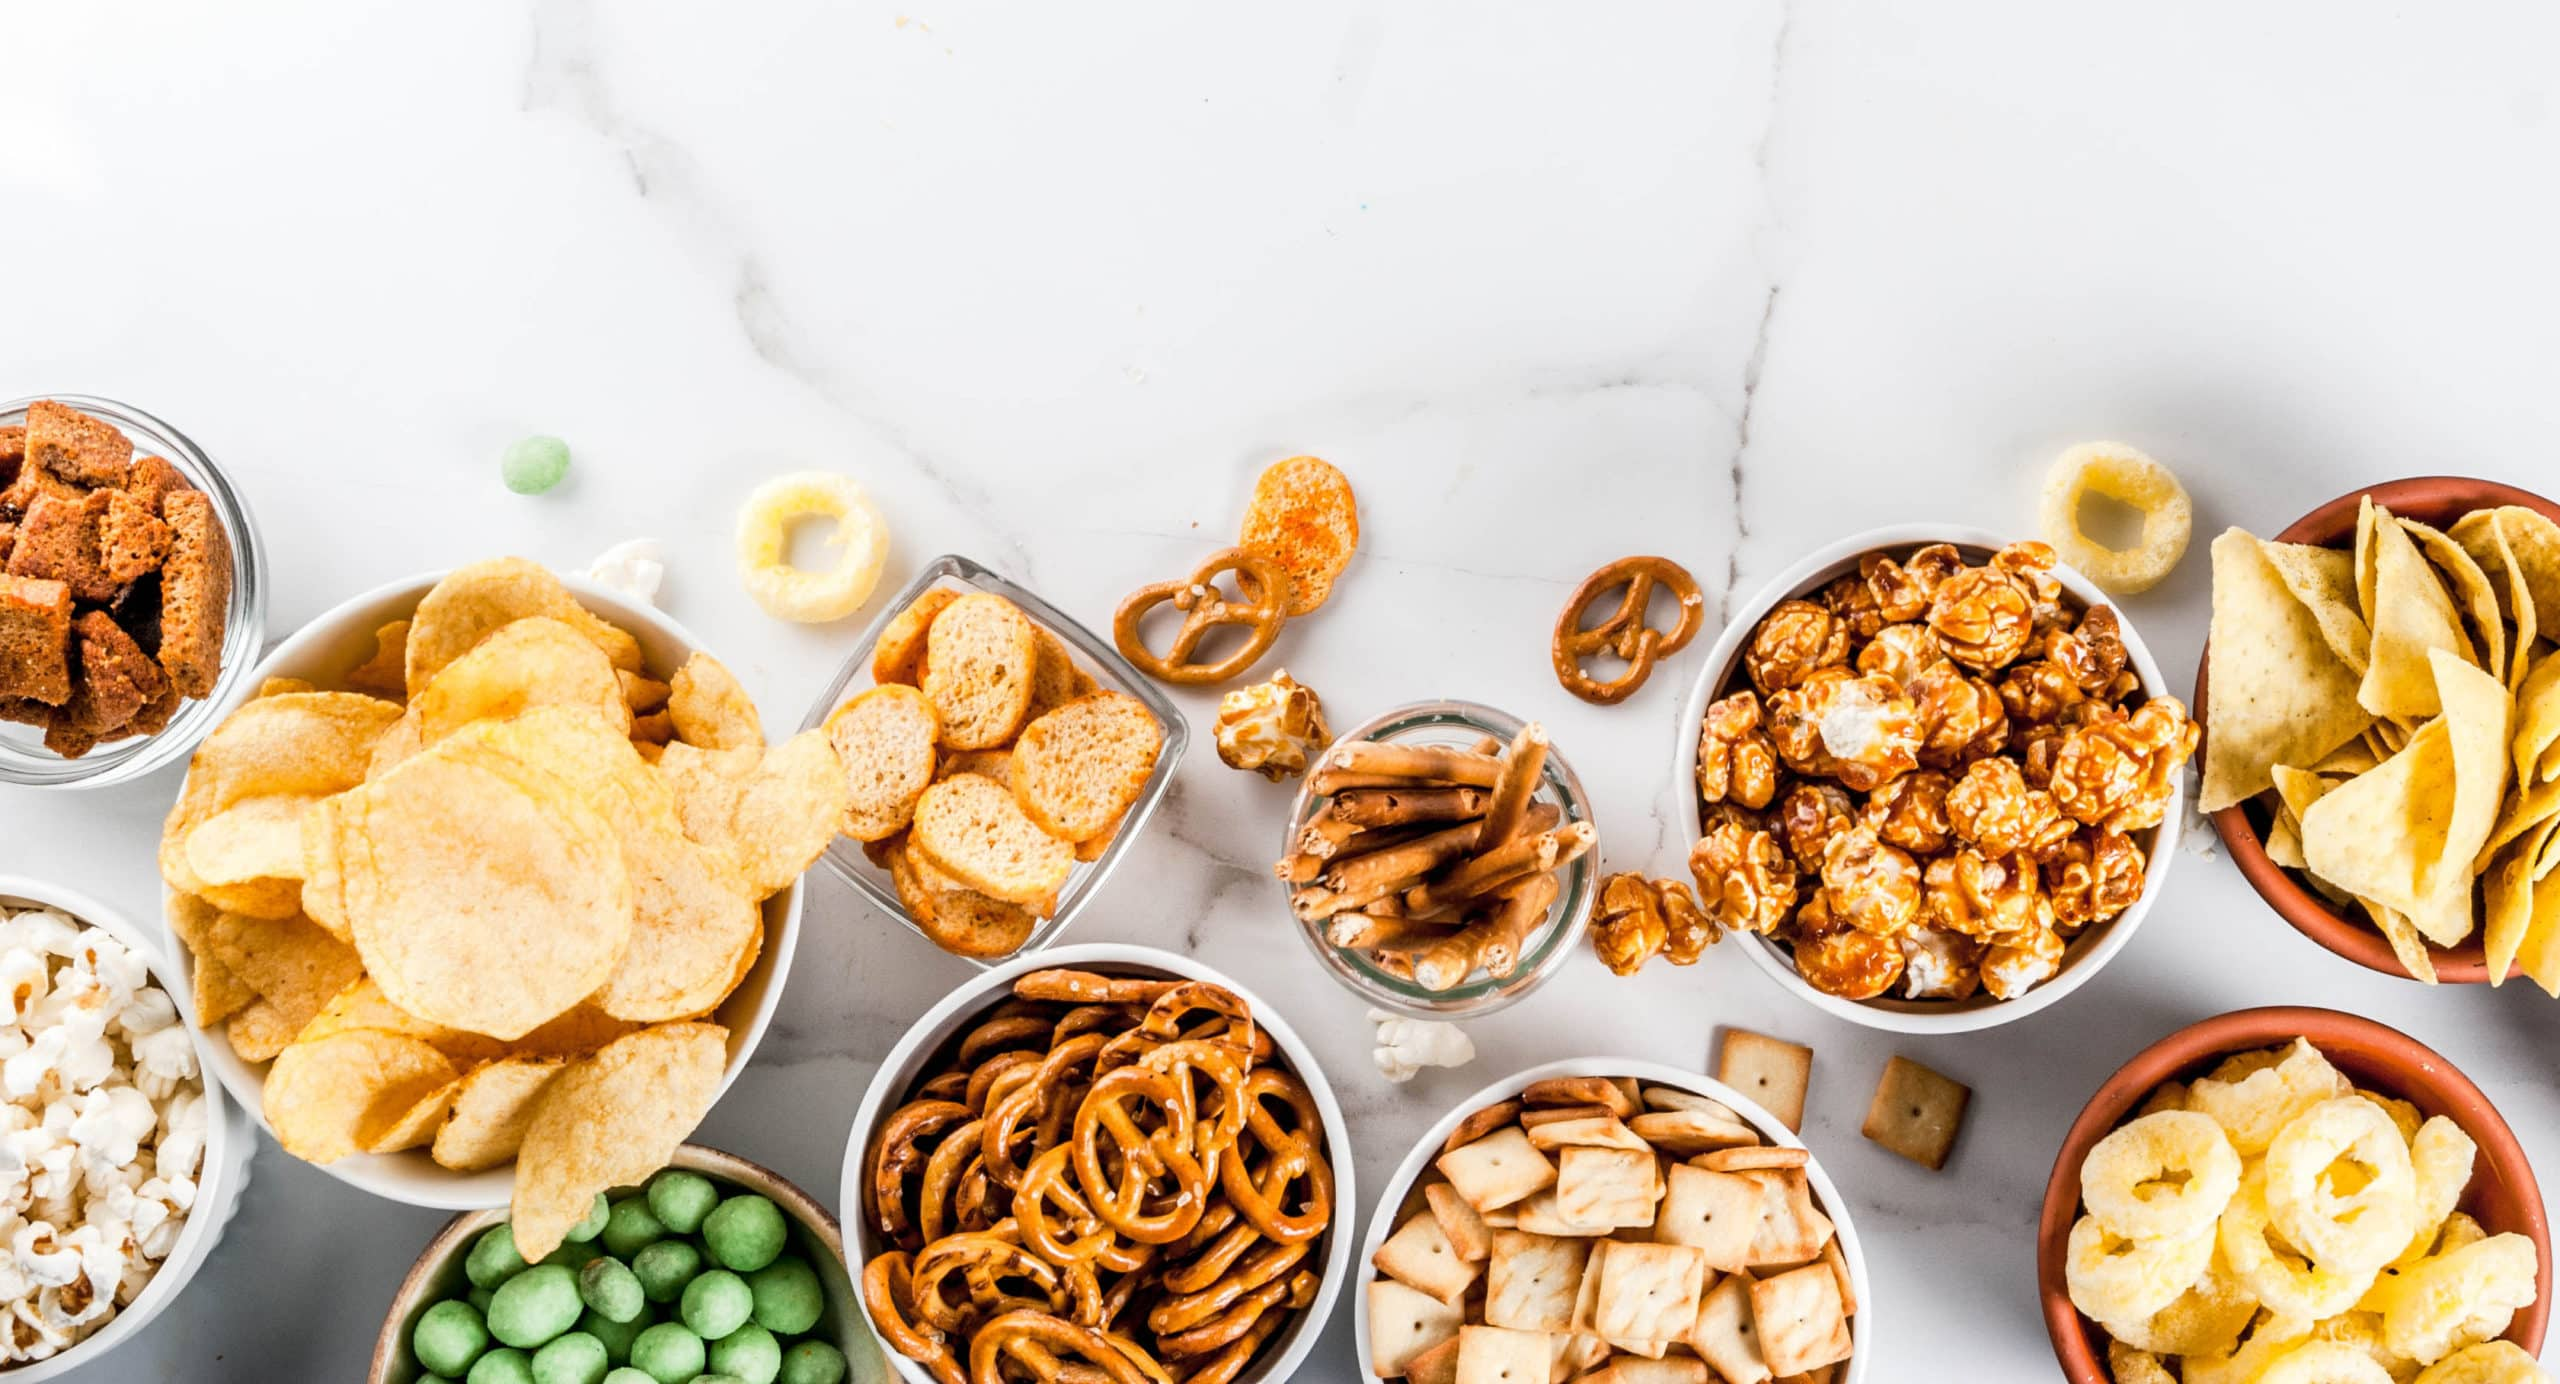 If You're Going to Stress Eat, Here Are 5 Healthy(ish) Options - Bobby Berk